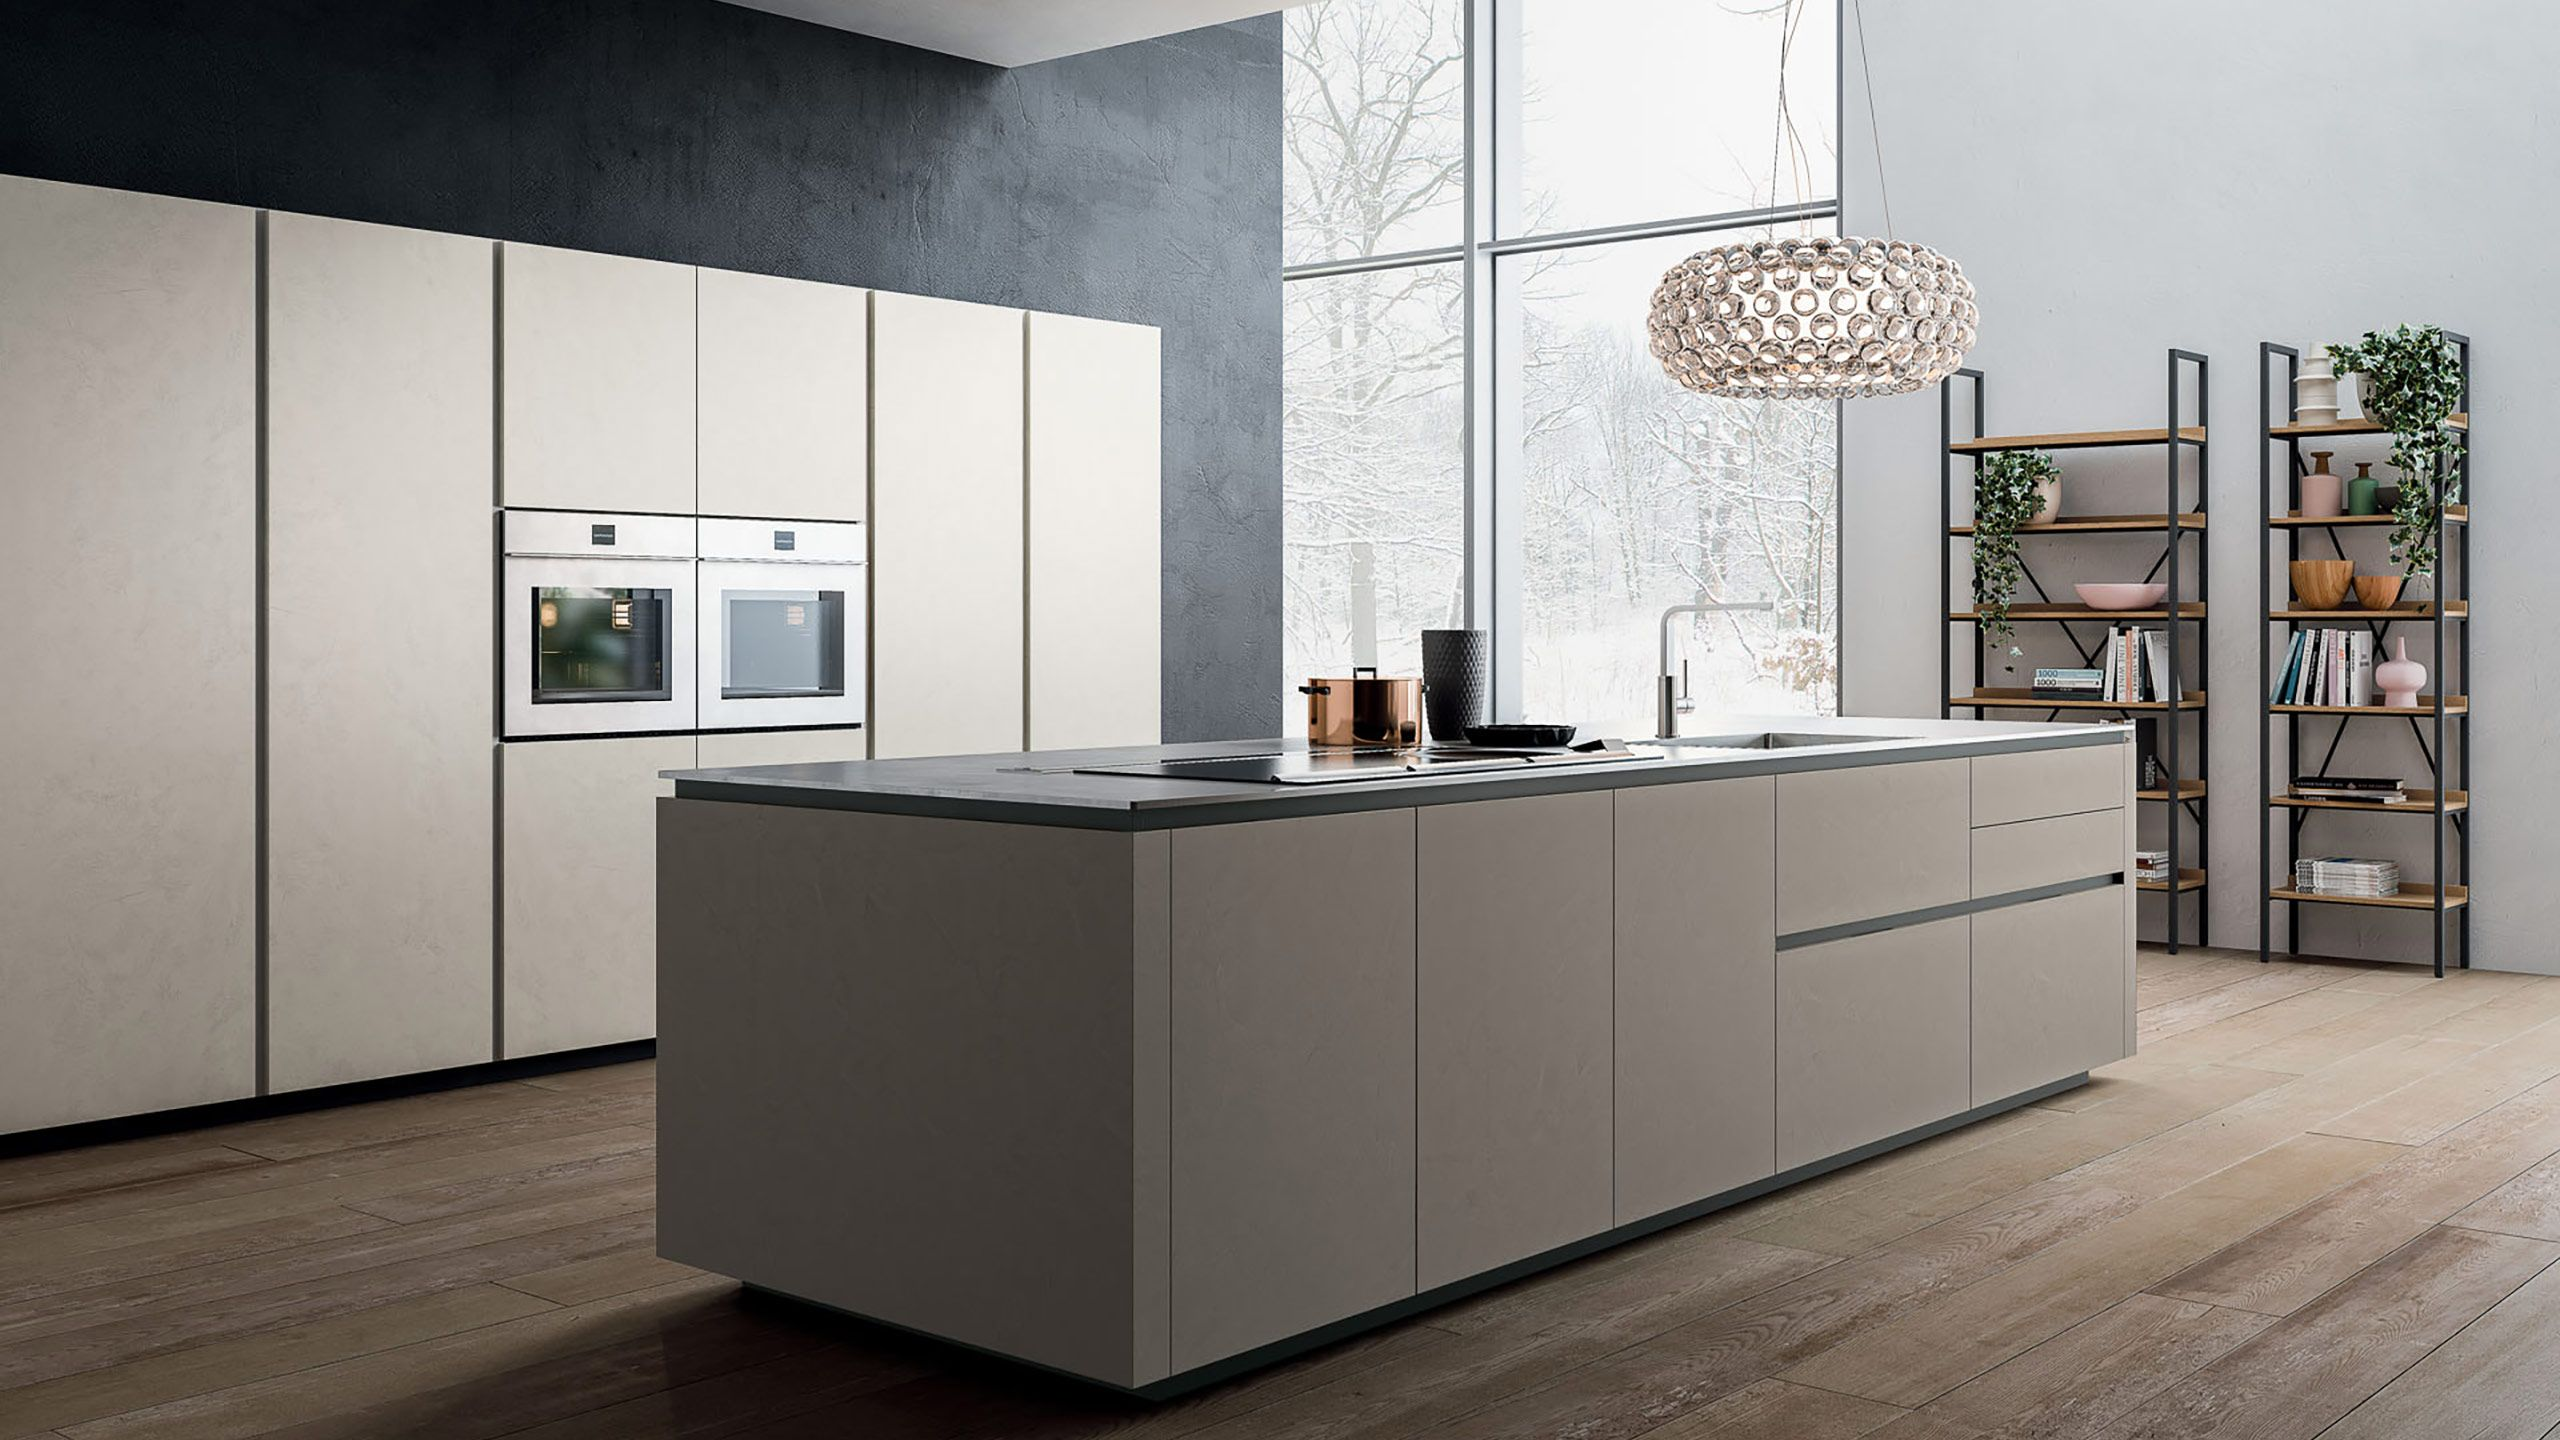 Pin By Tendenza Cucina On Exligno In 2020 Home Goods Decor Kitchen Style Smart Kitchen